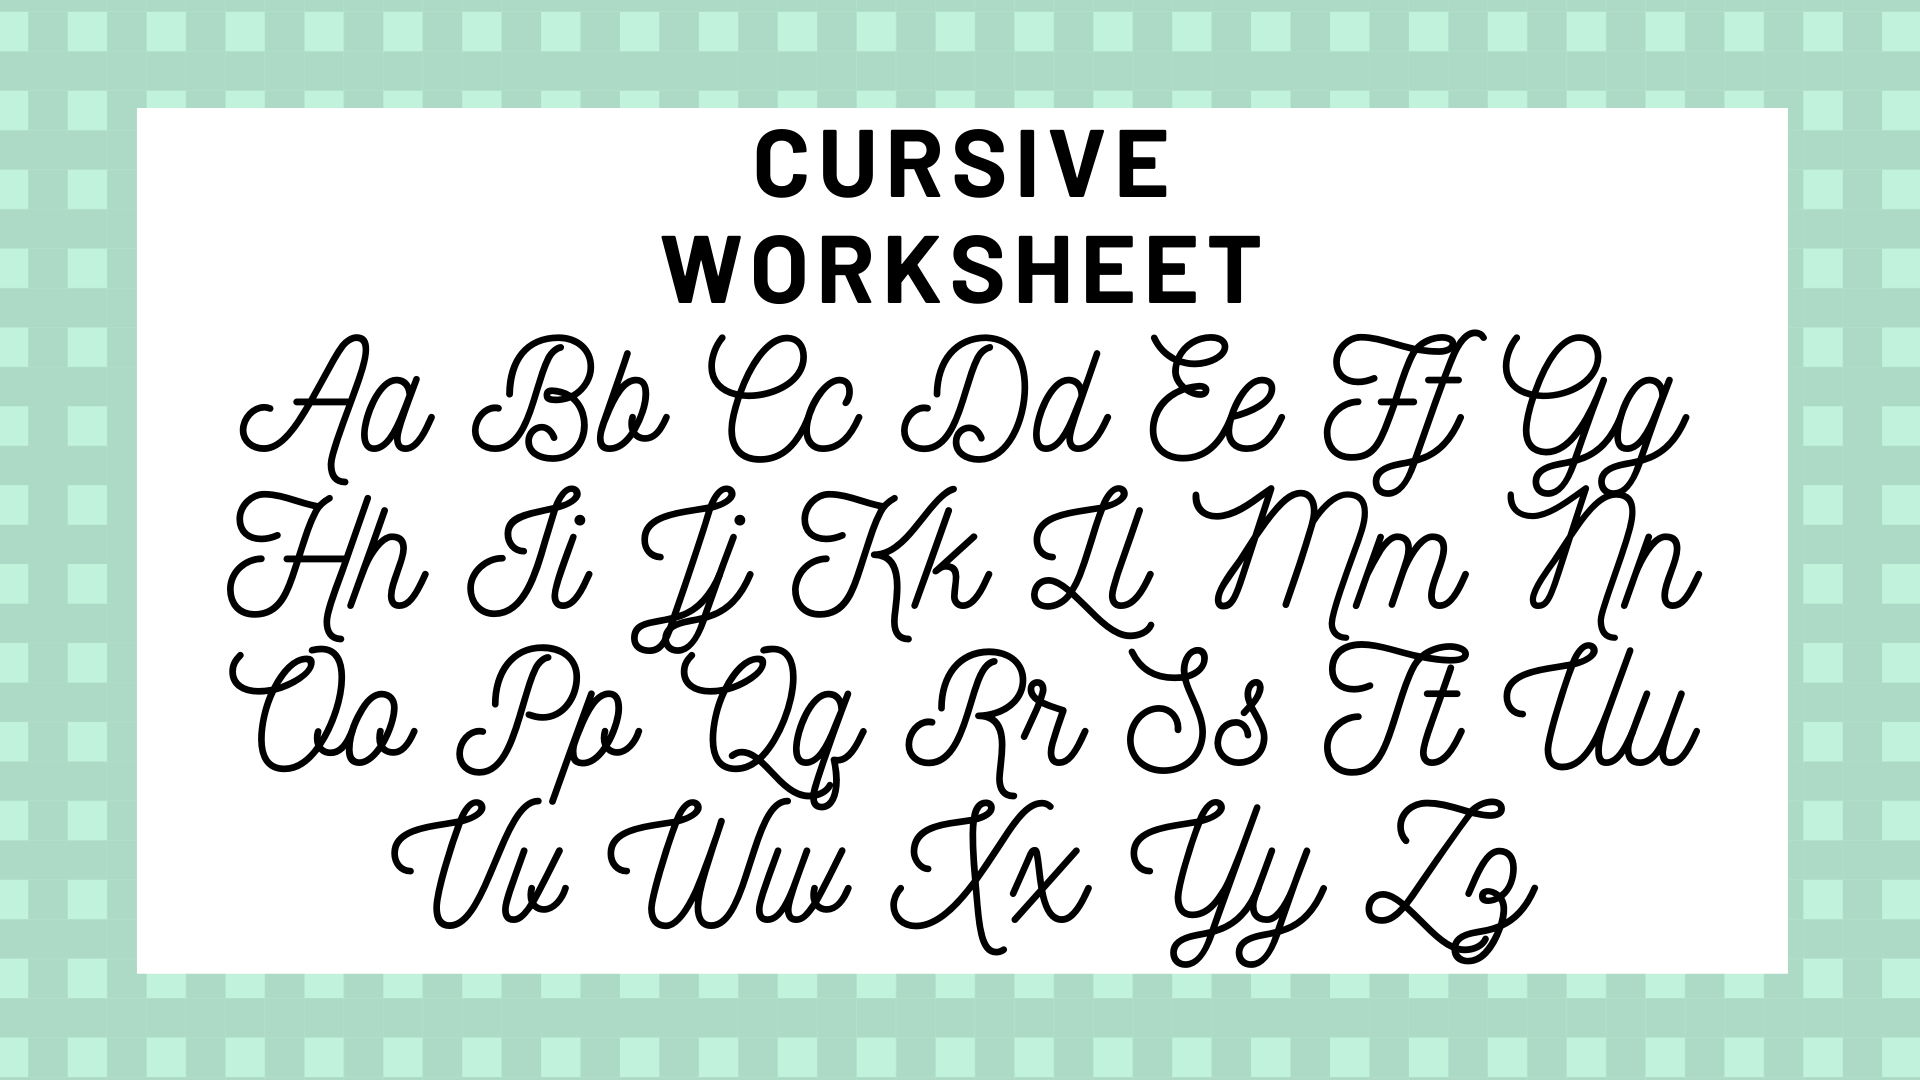 Cursive Alphabet: Your Guide To Cursive Writing | Science Trends